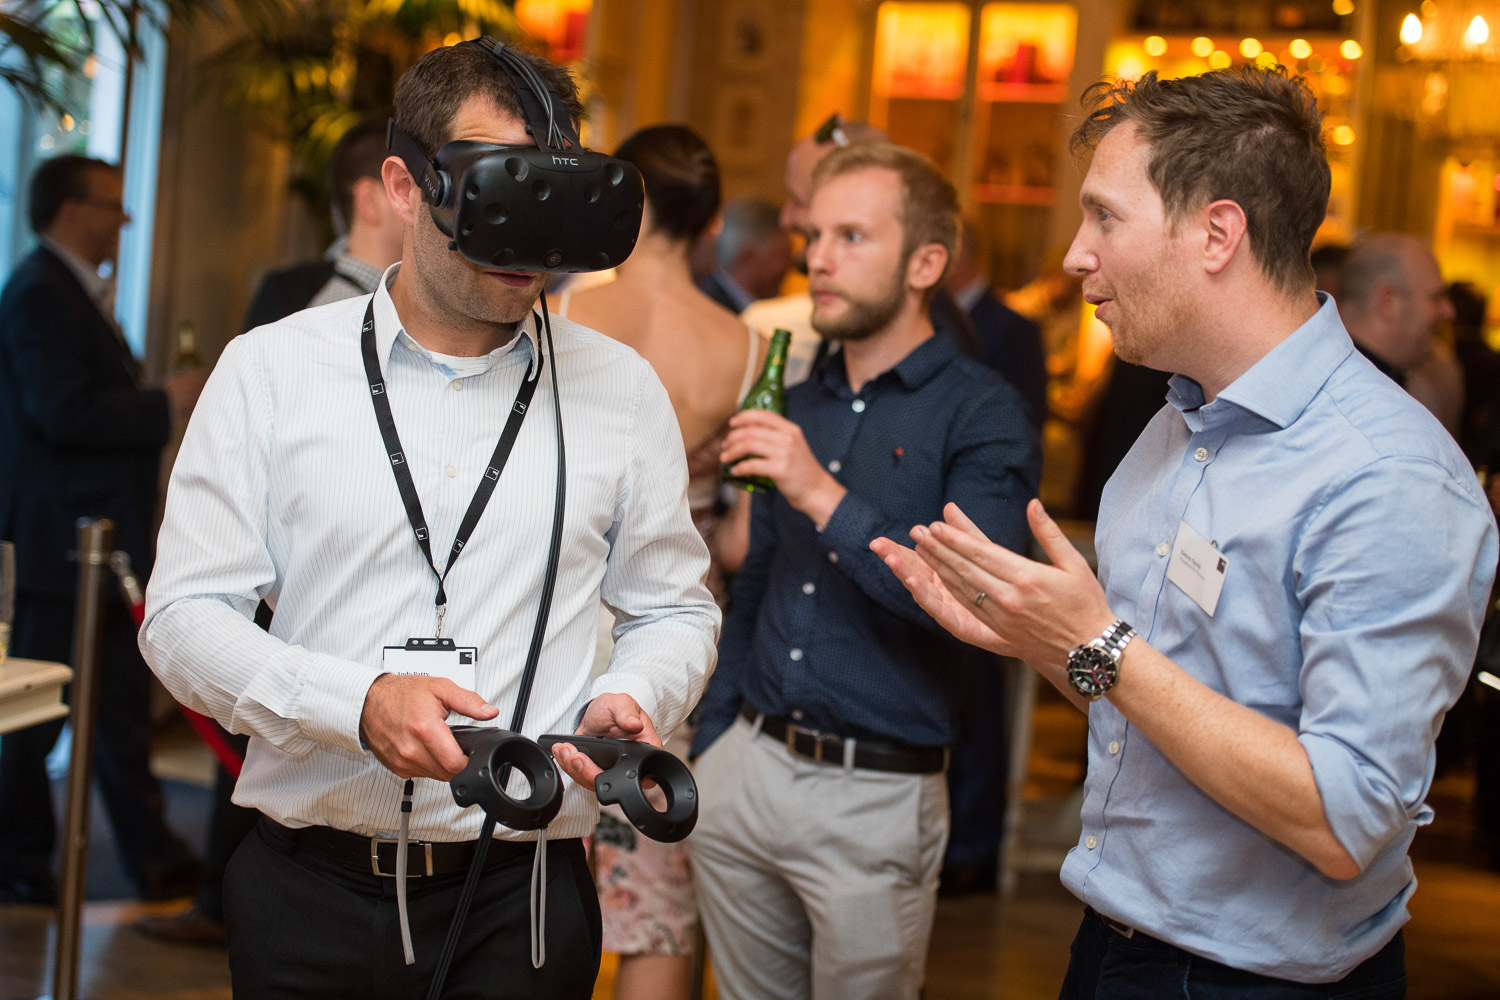 Manchester event Photography Staff Summer Party using virtual reality at Australasia restaurant manchester for ISG construction photography by Jon Parker Lee